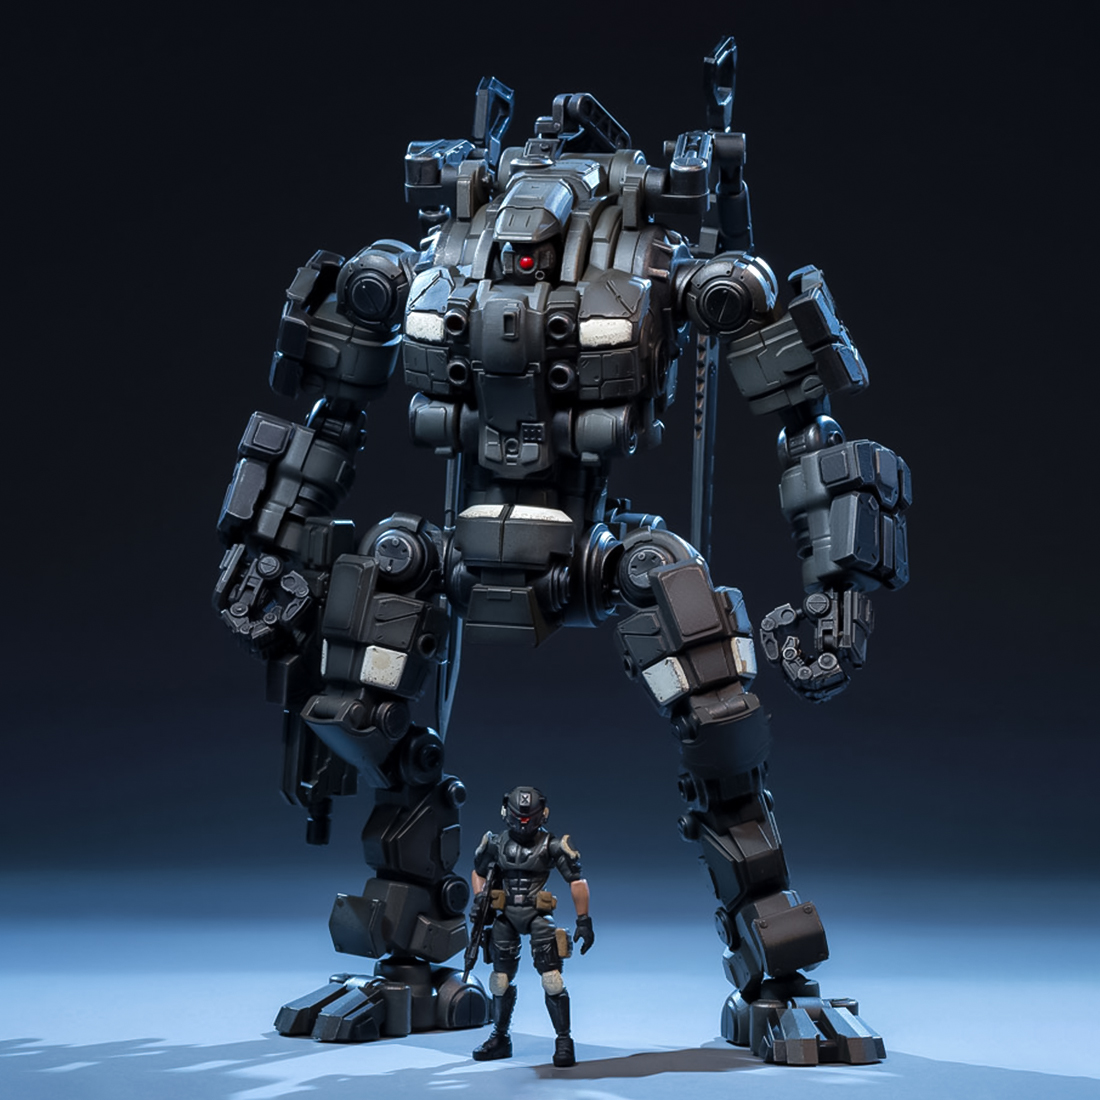 28cm Mecha Model Double Militia Assault Mecha Assorted Color Assembly Removable Soldier Model With High Degree Of Reduction28cm Mecha Model Double Militia Assault Mecha Assorted Color Assembly Removable Soldier Model With High Degree Of Reduction